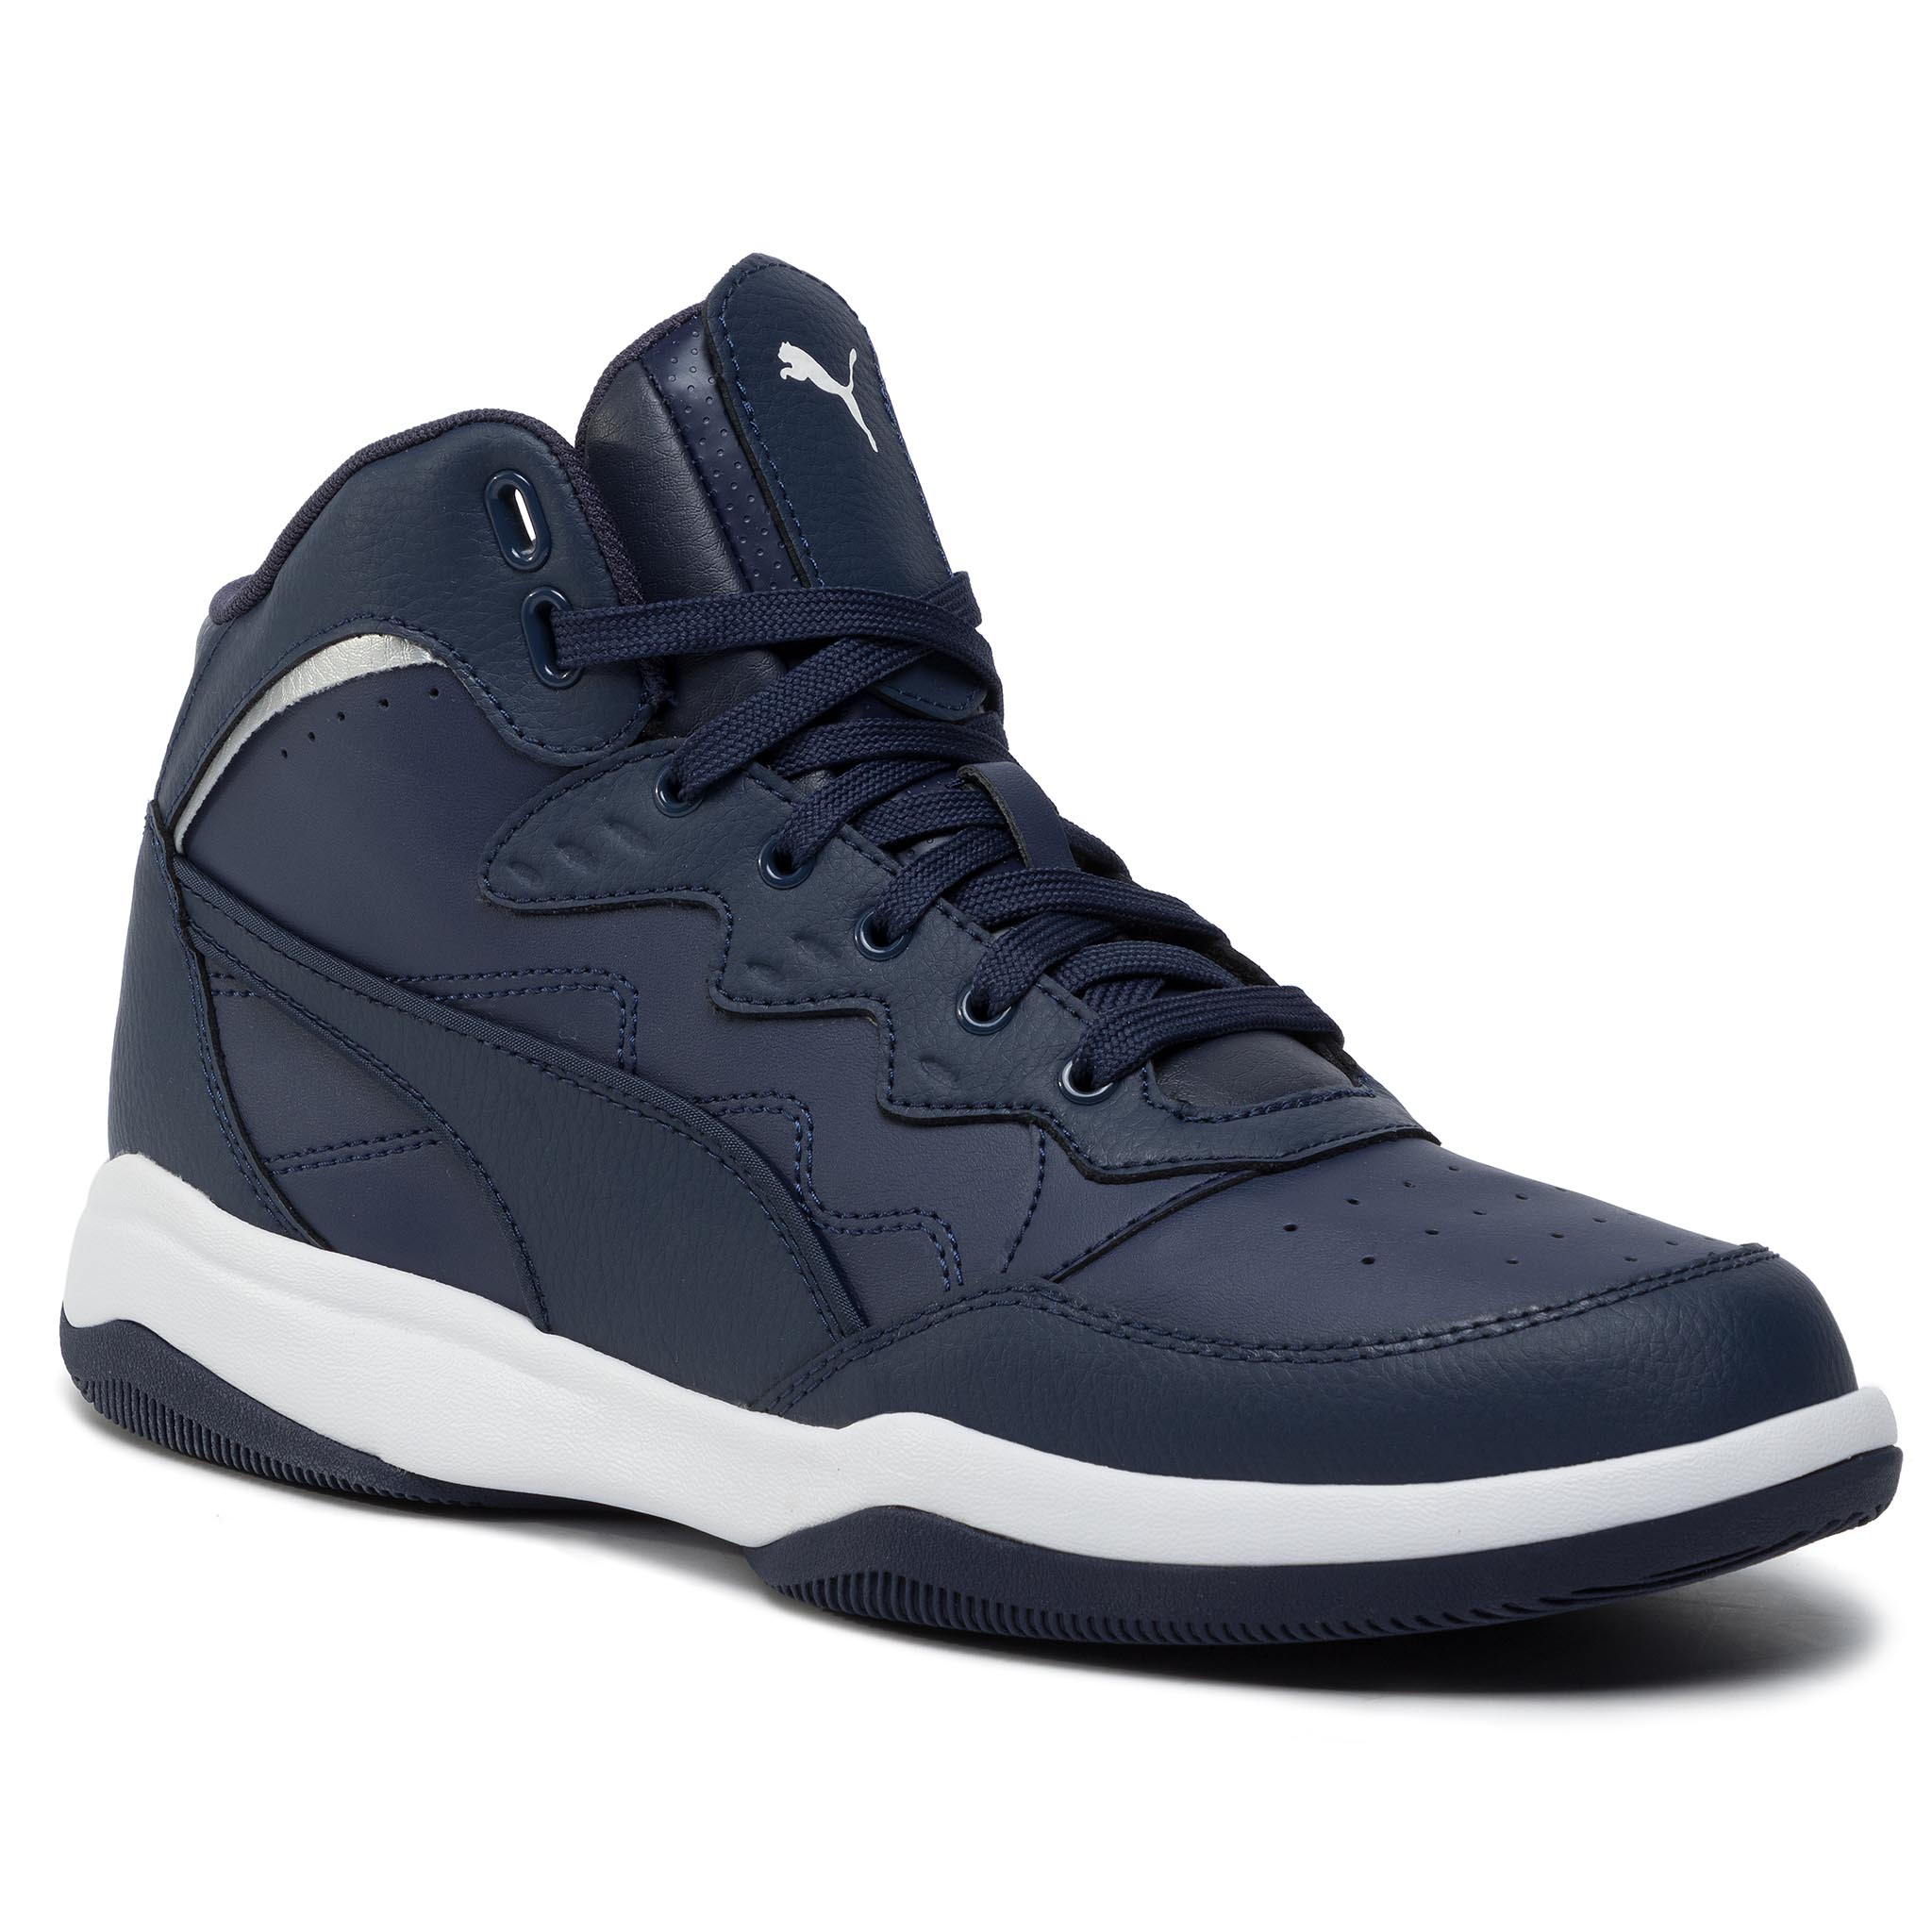 Sneakers PUMA - Rb Playoff L 370546 03 Peacoat/Puma Silver